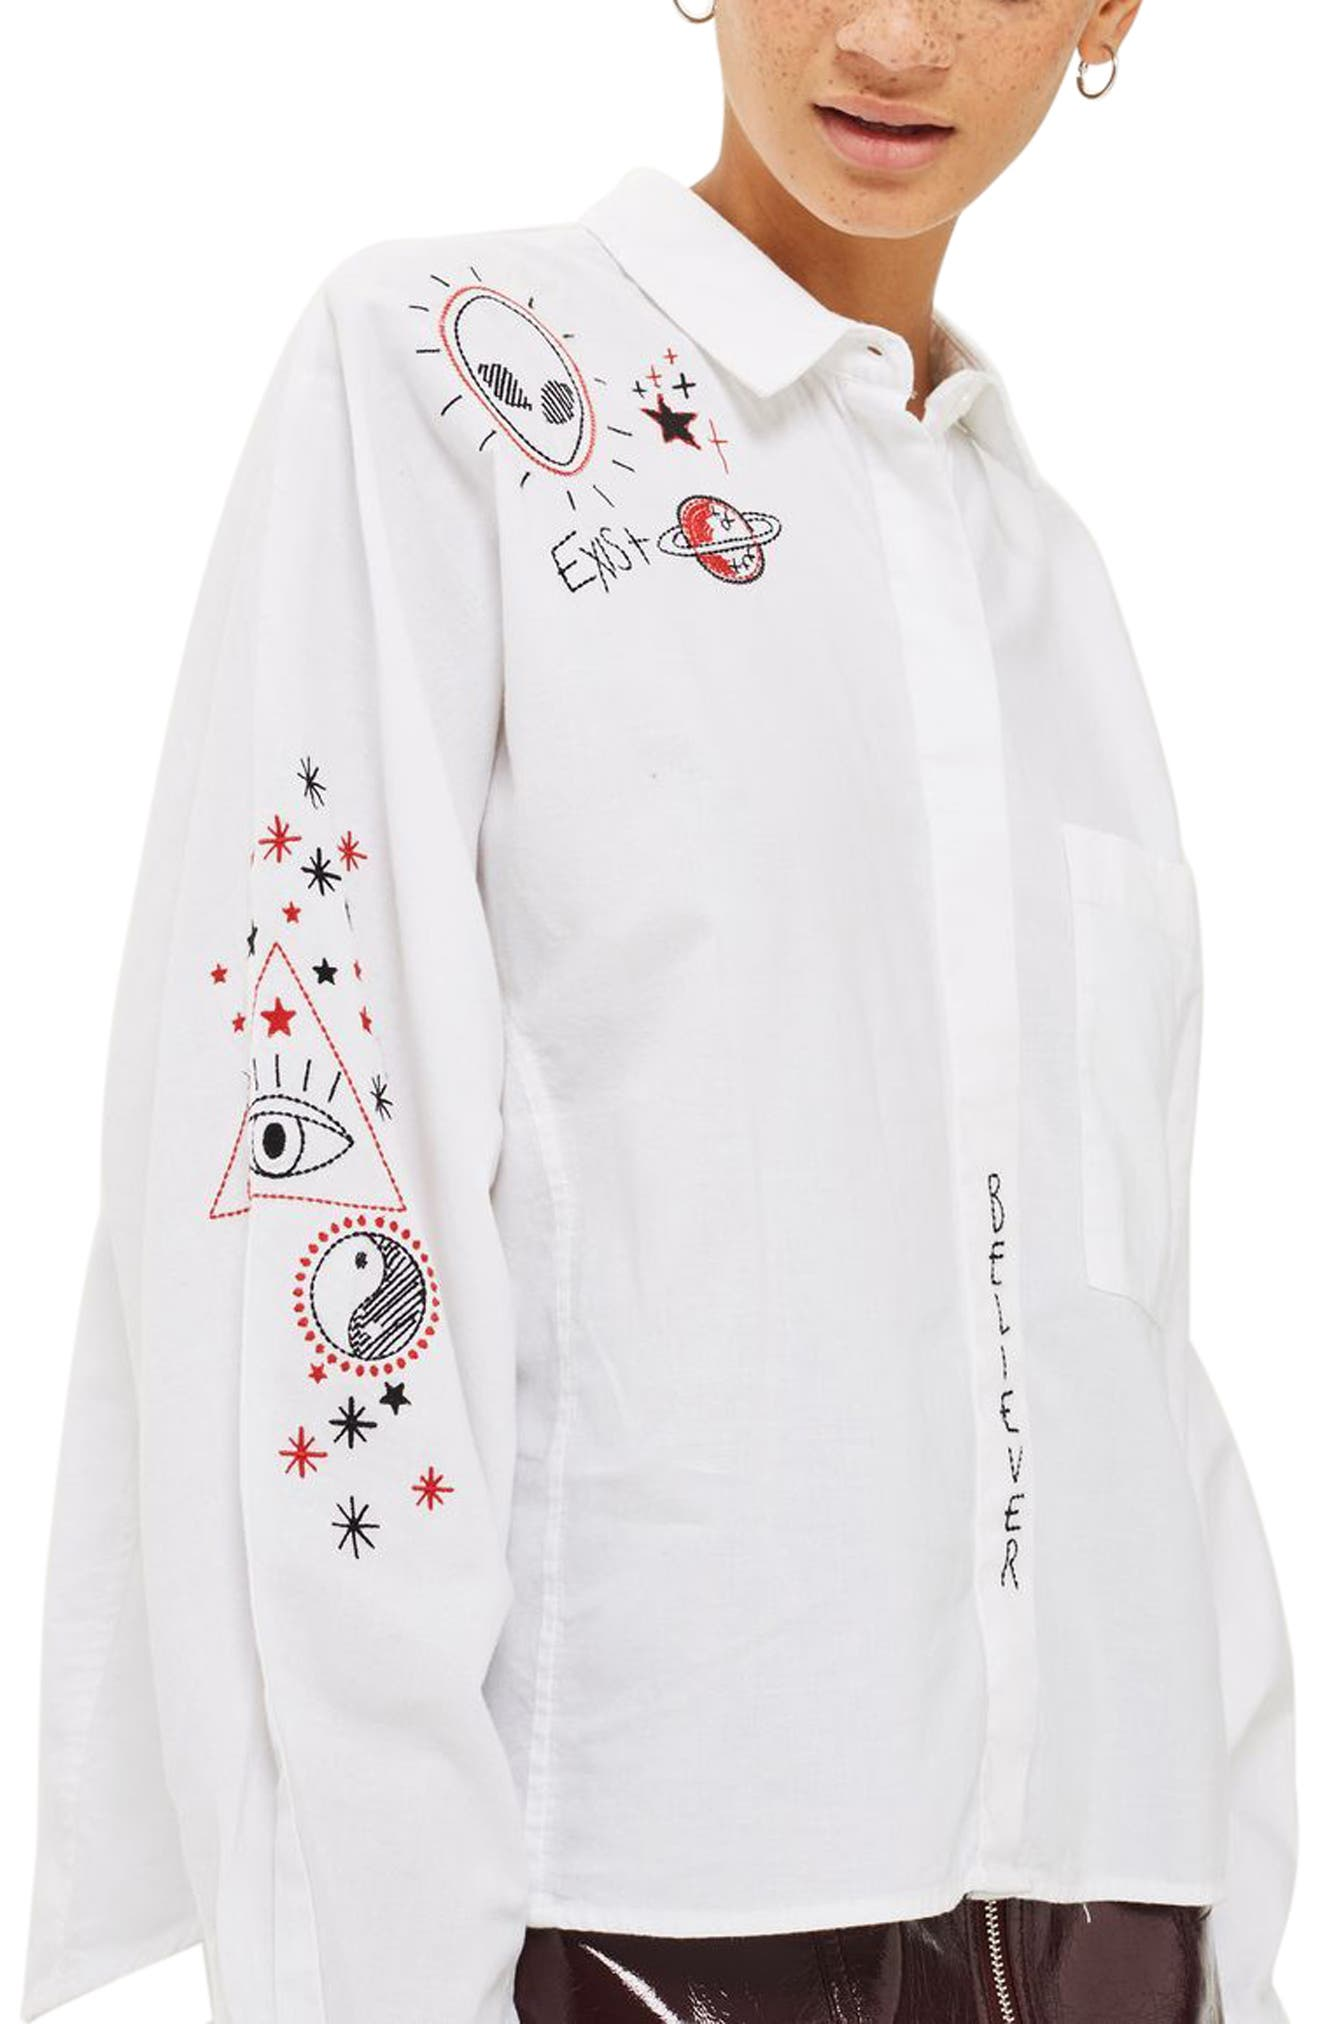 Doodle Believer Embroidered Shirt,                             Main thumbnail 1, color,                             900